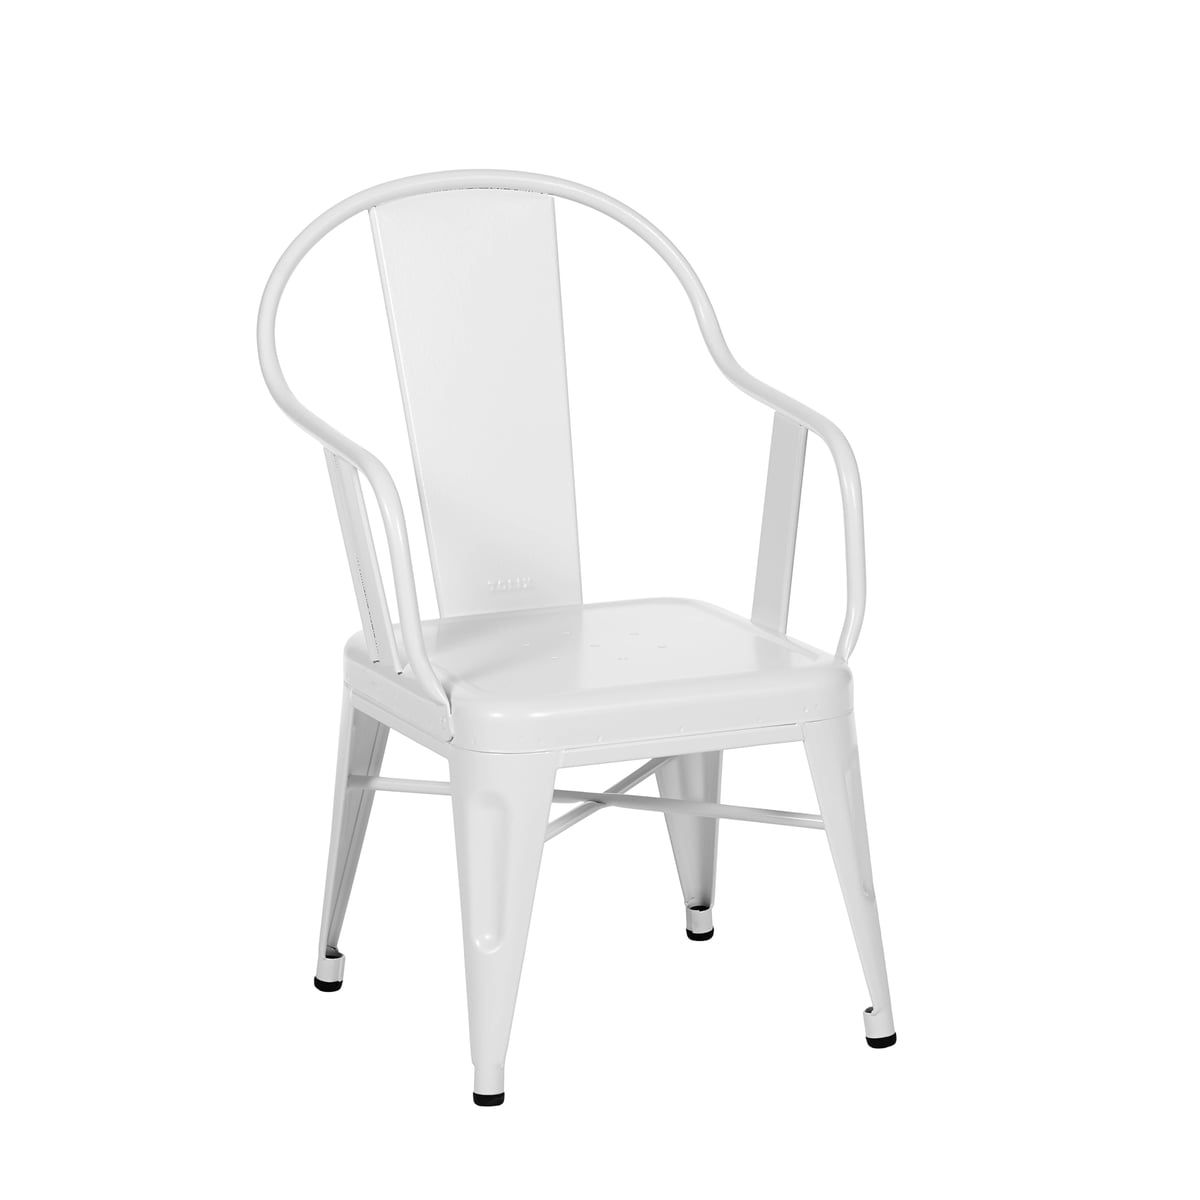 Chair drawing for kids - Seagull Armchair By Tolix In White Matt